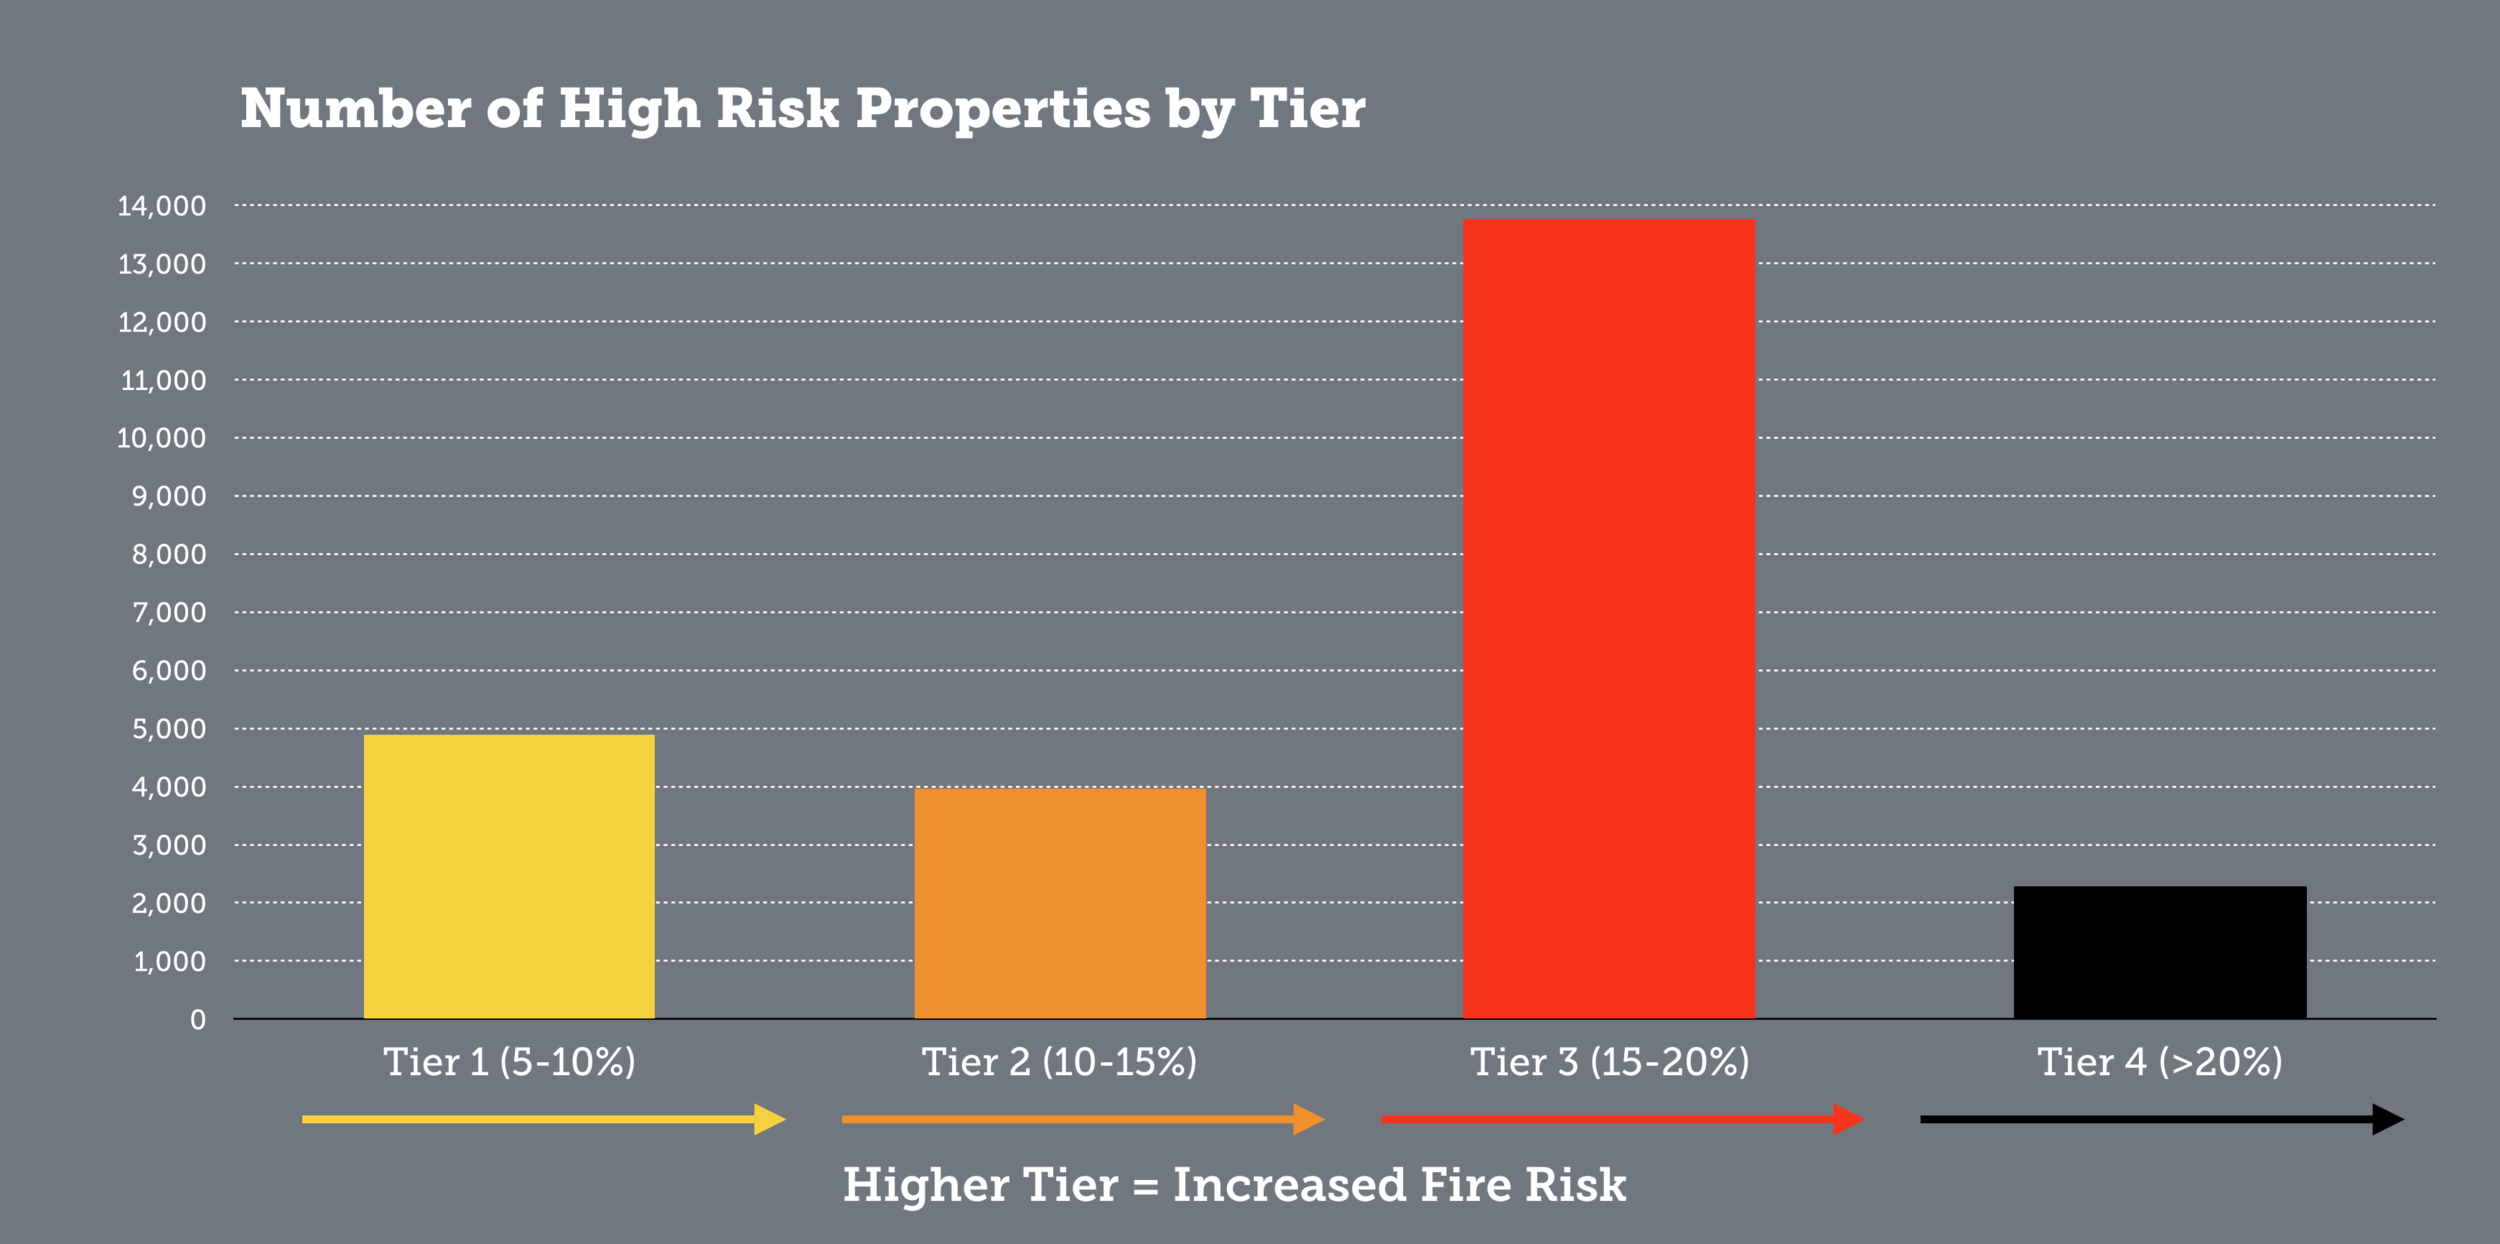 Number of high risk properties by tier, citywide